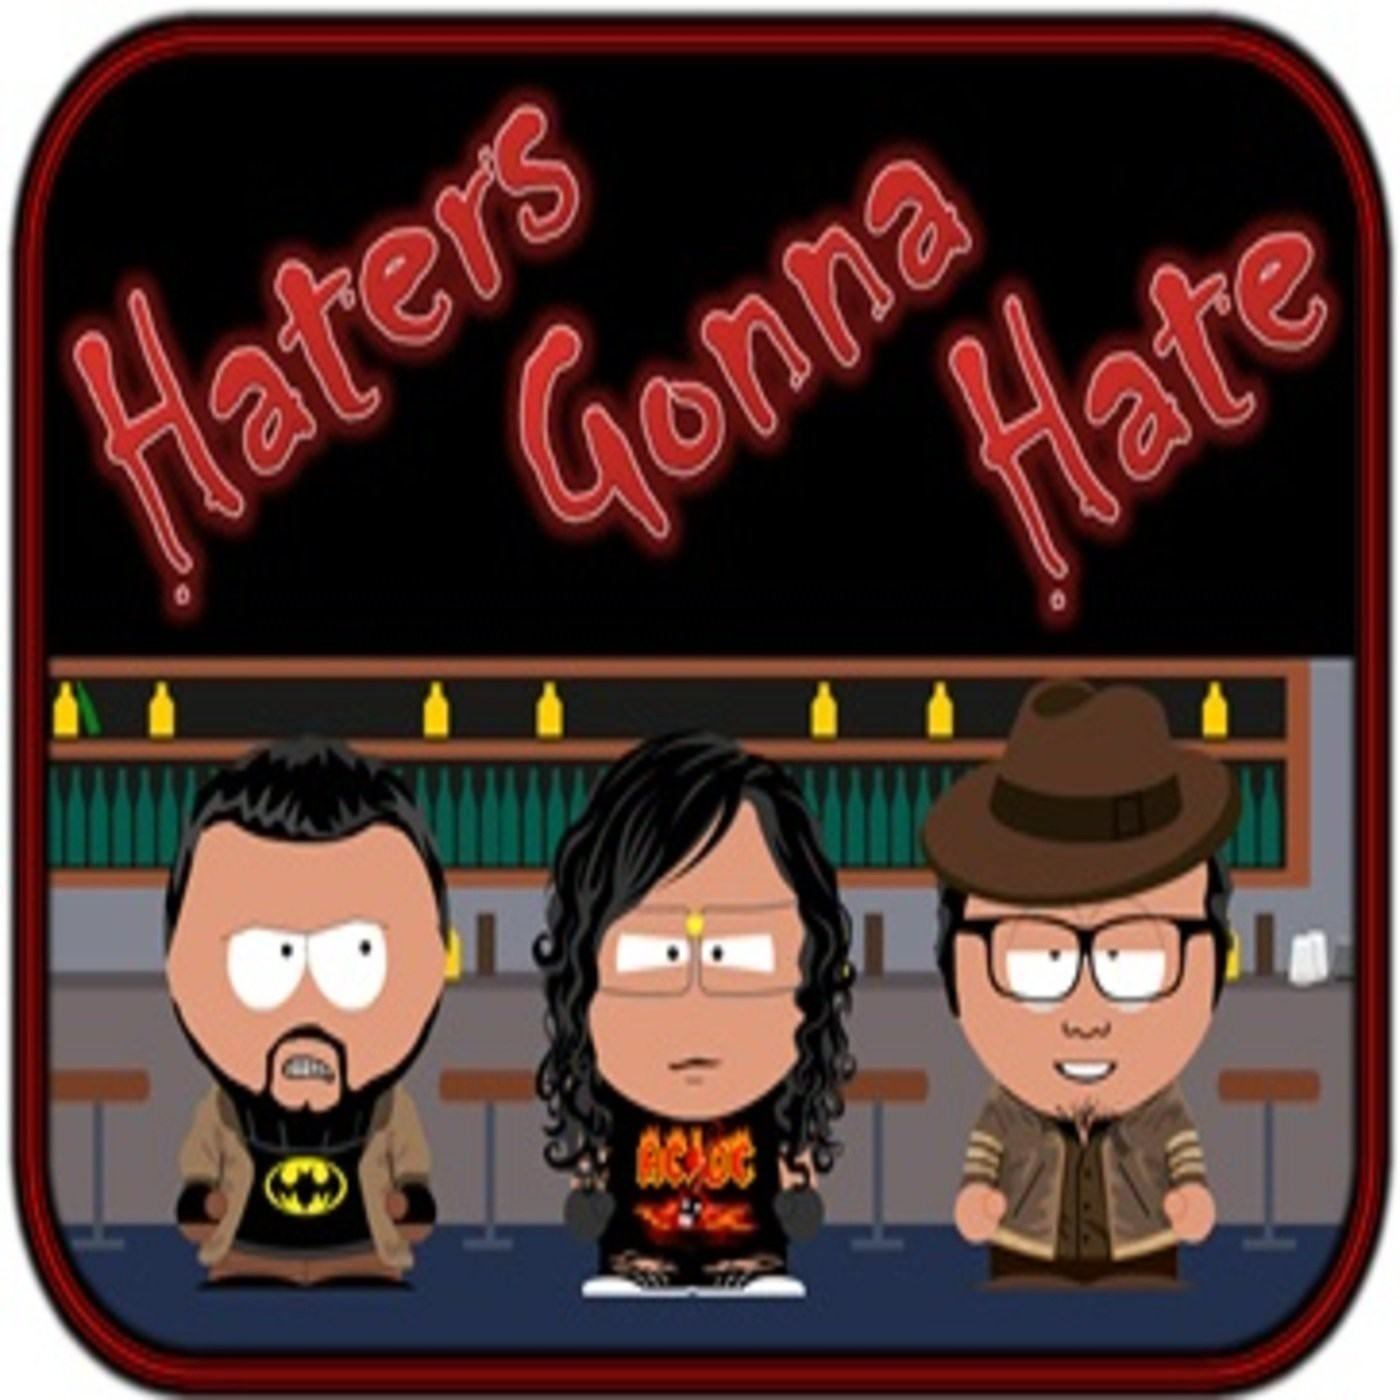 <![CDATA[Haters Gonna Hate]]>